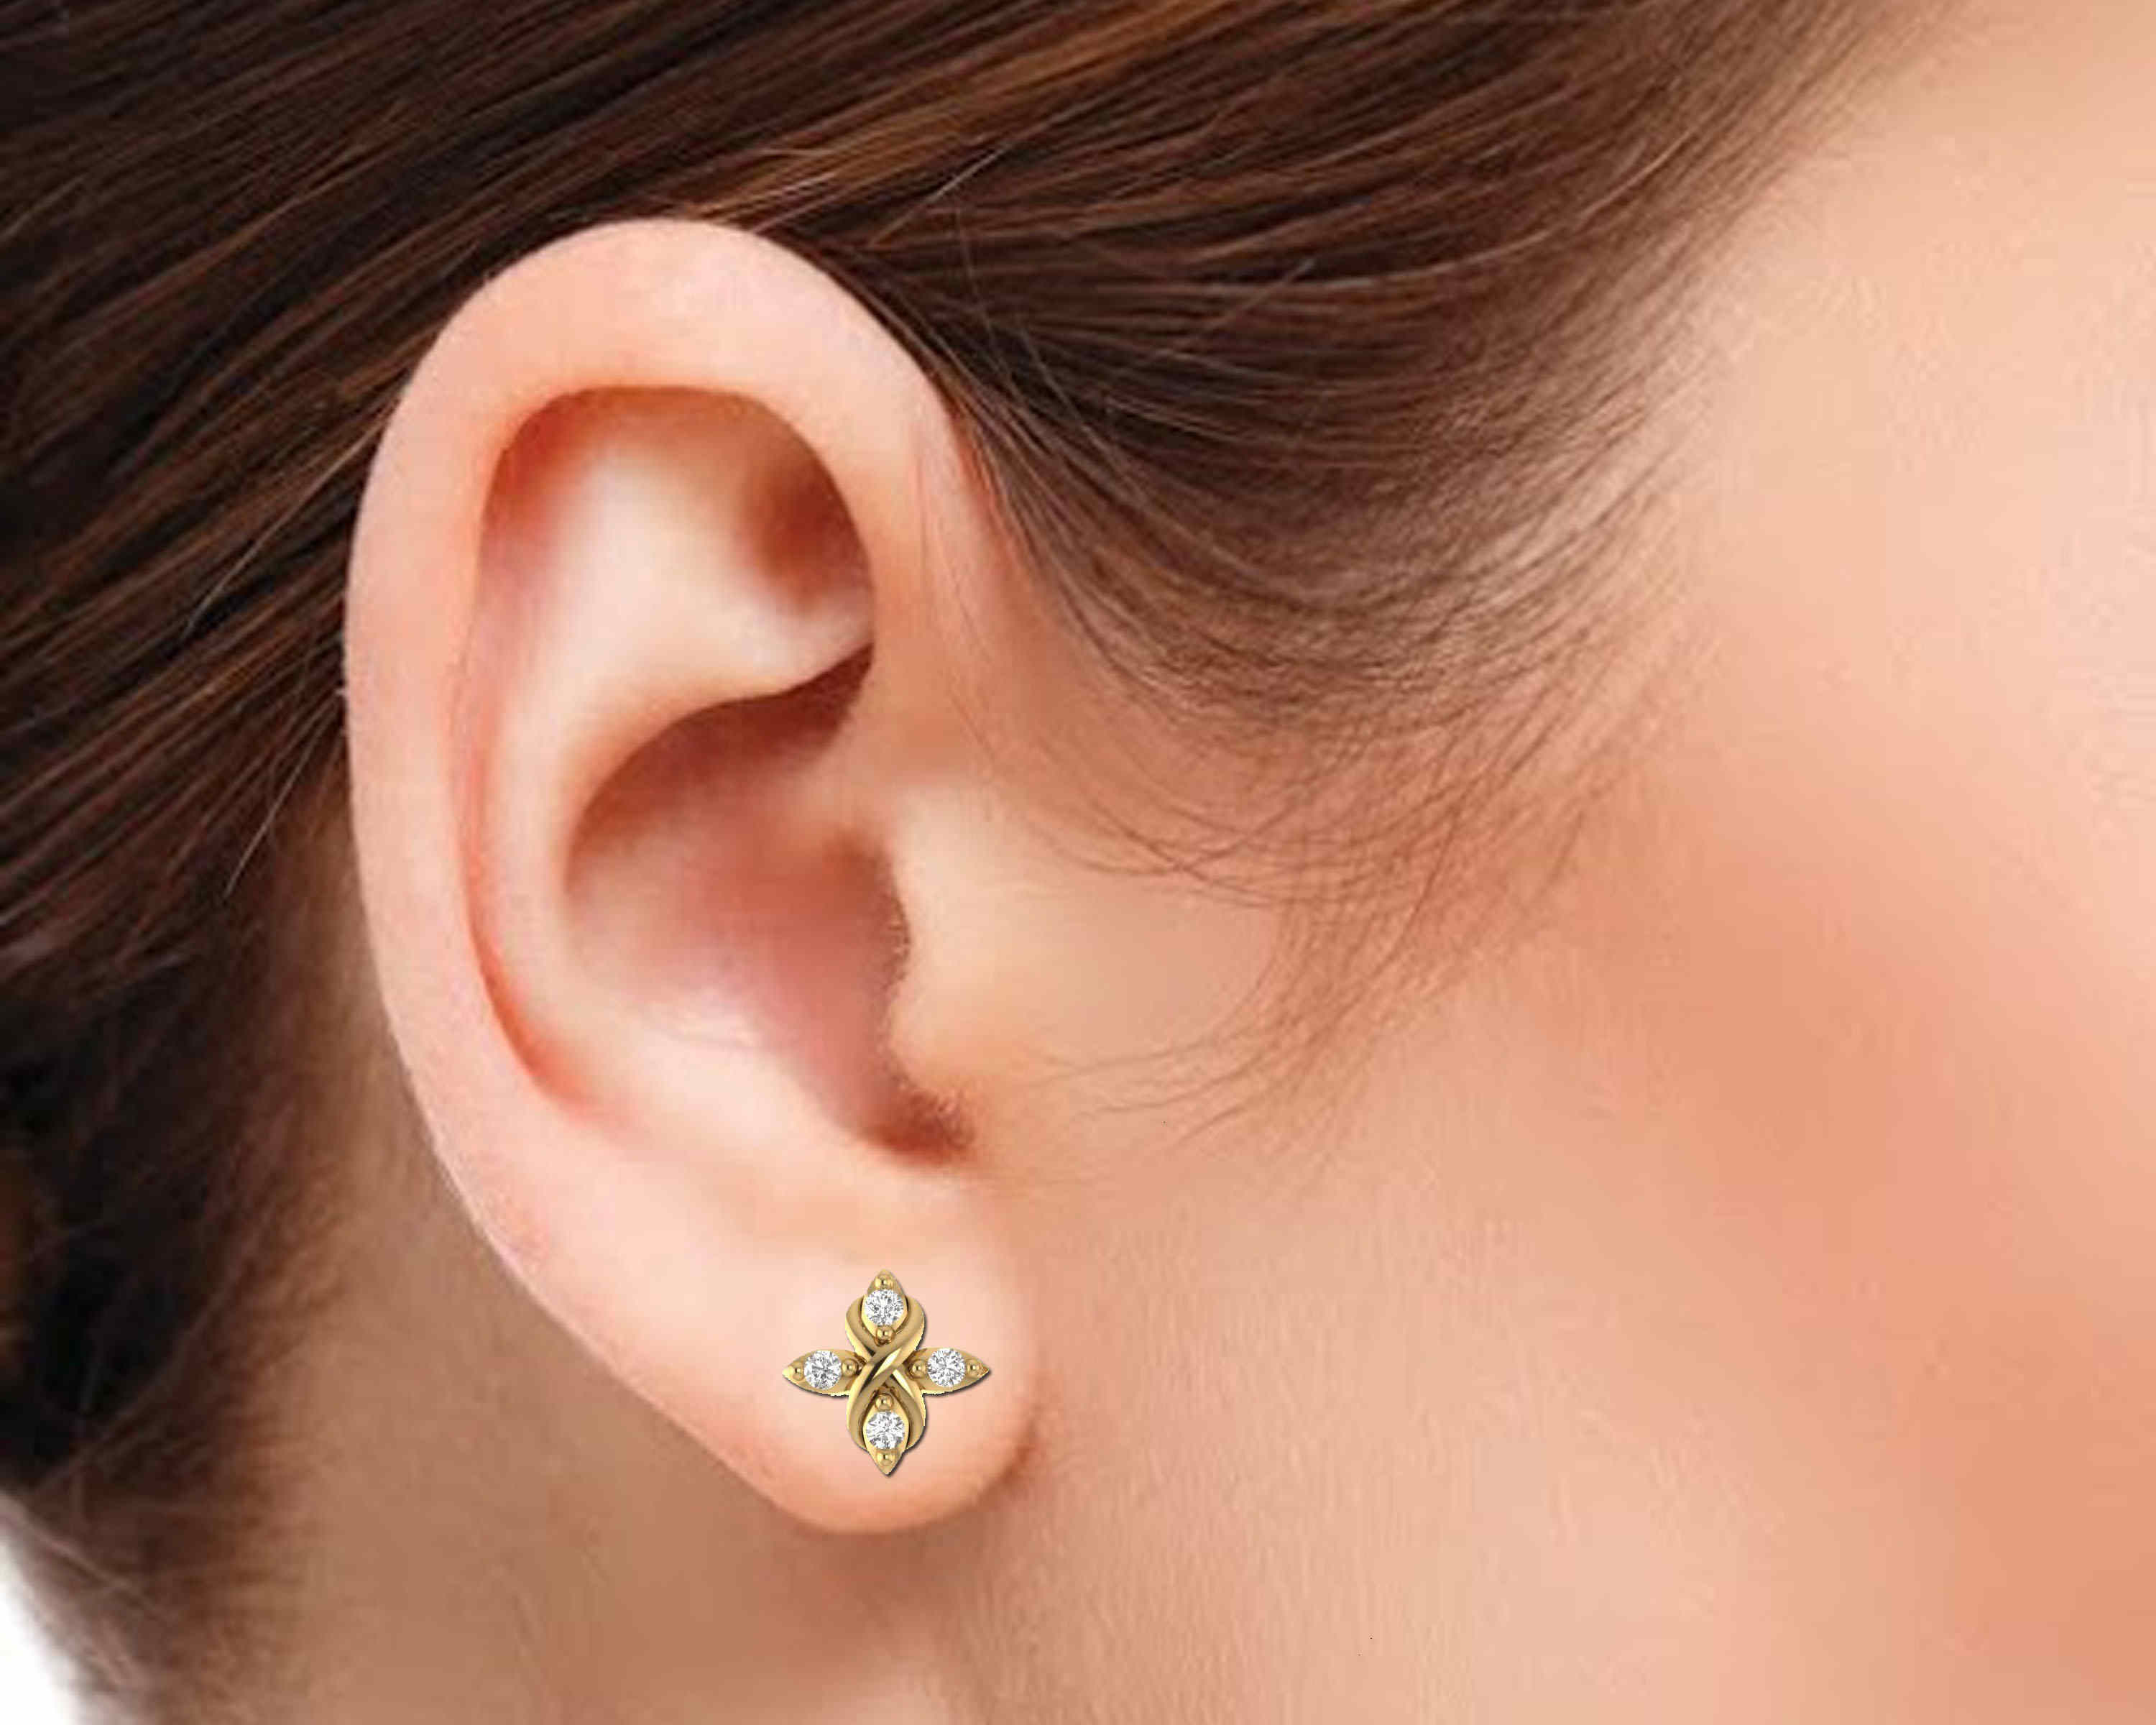 Heart With Four Diamond Earrin